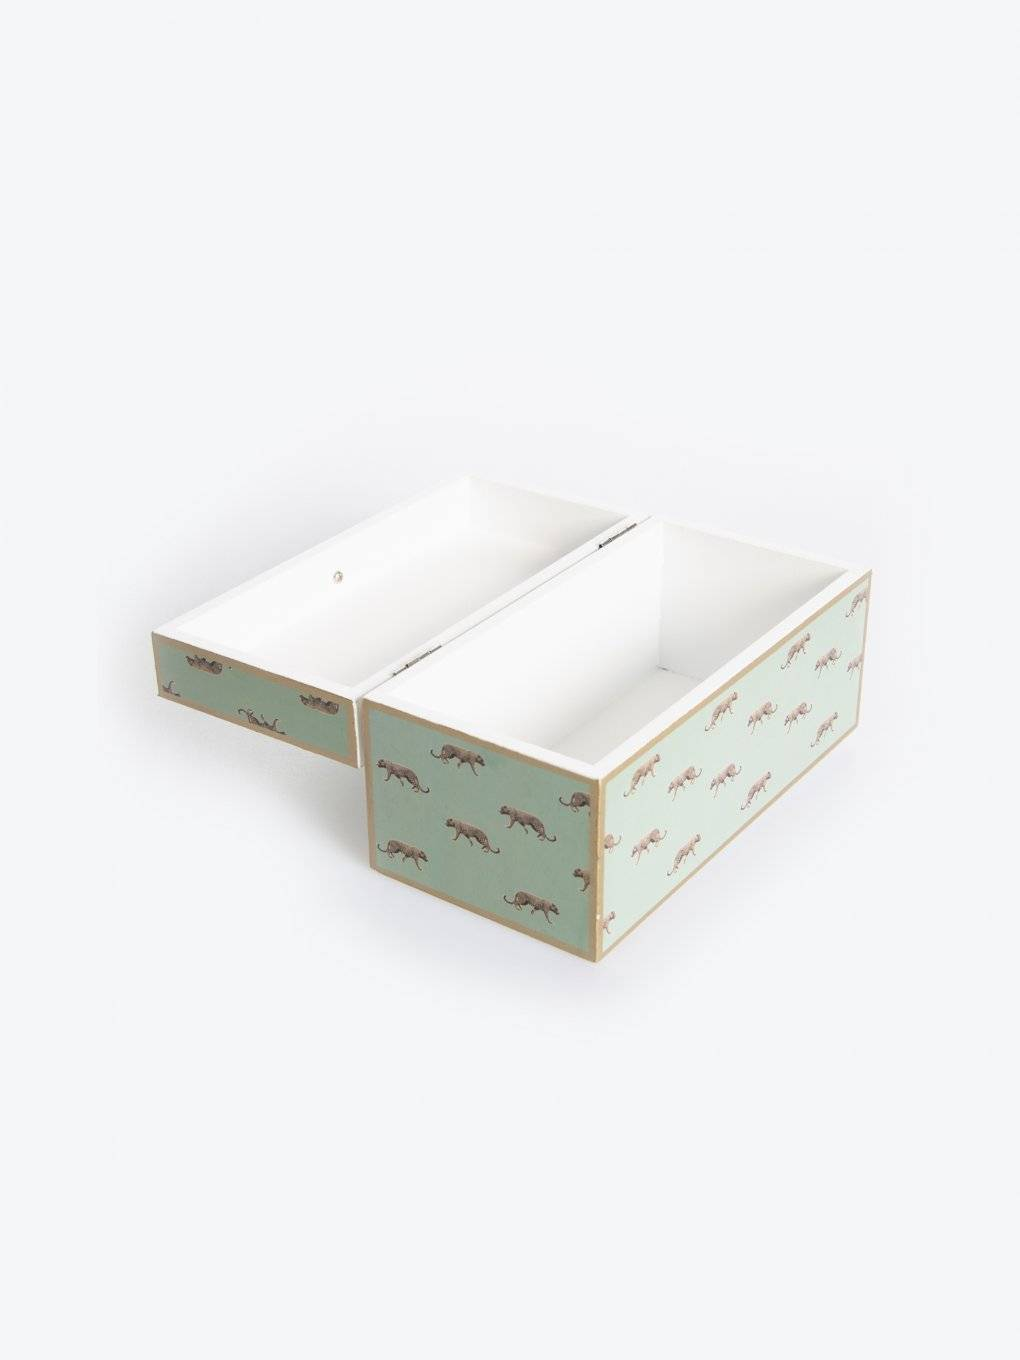 Wooden casket with animal design